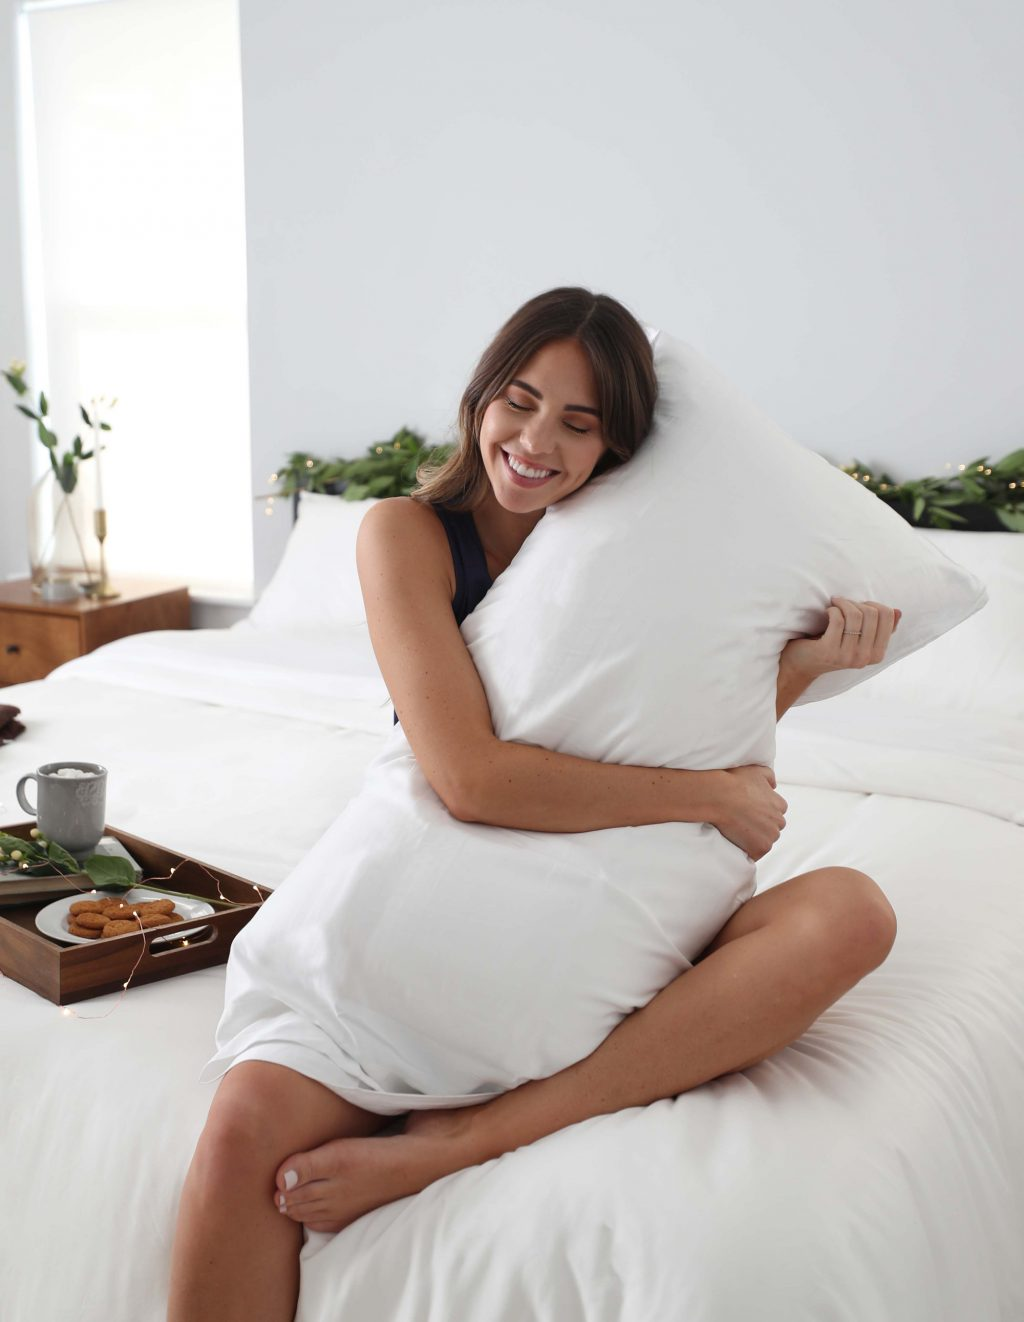 One Good Thing Talks about Sheets Being Something Not to Buy Cheap